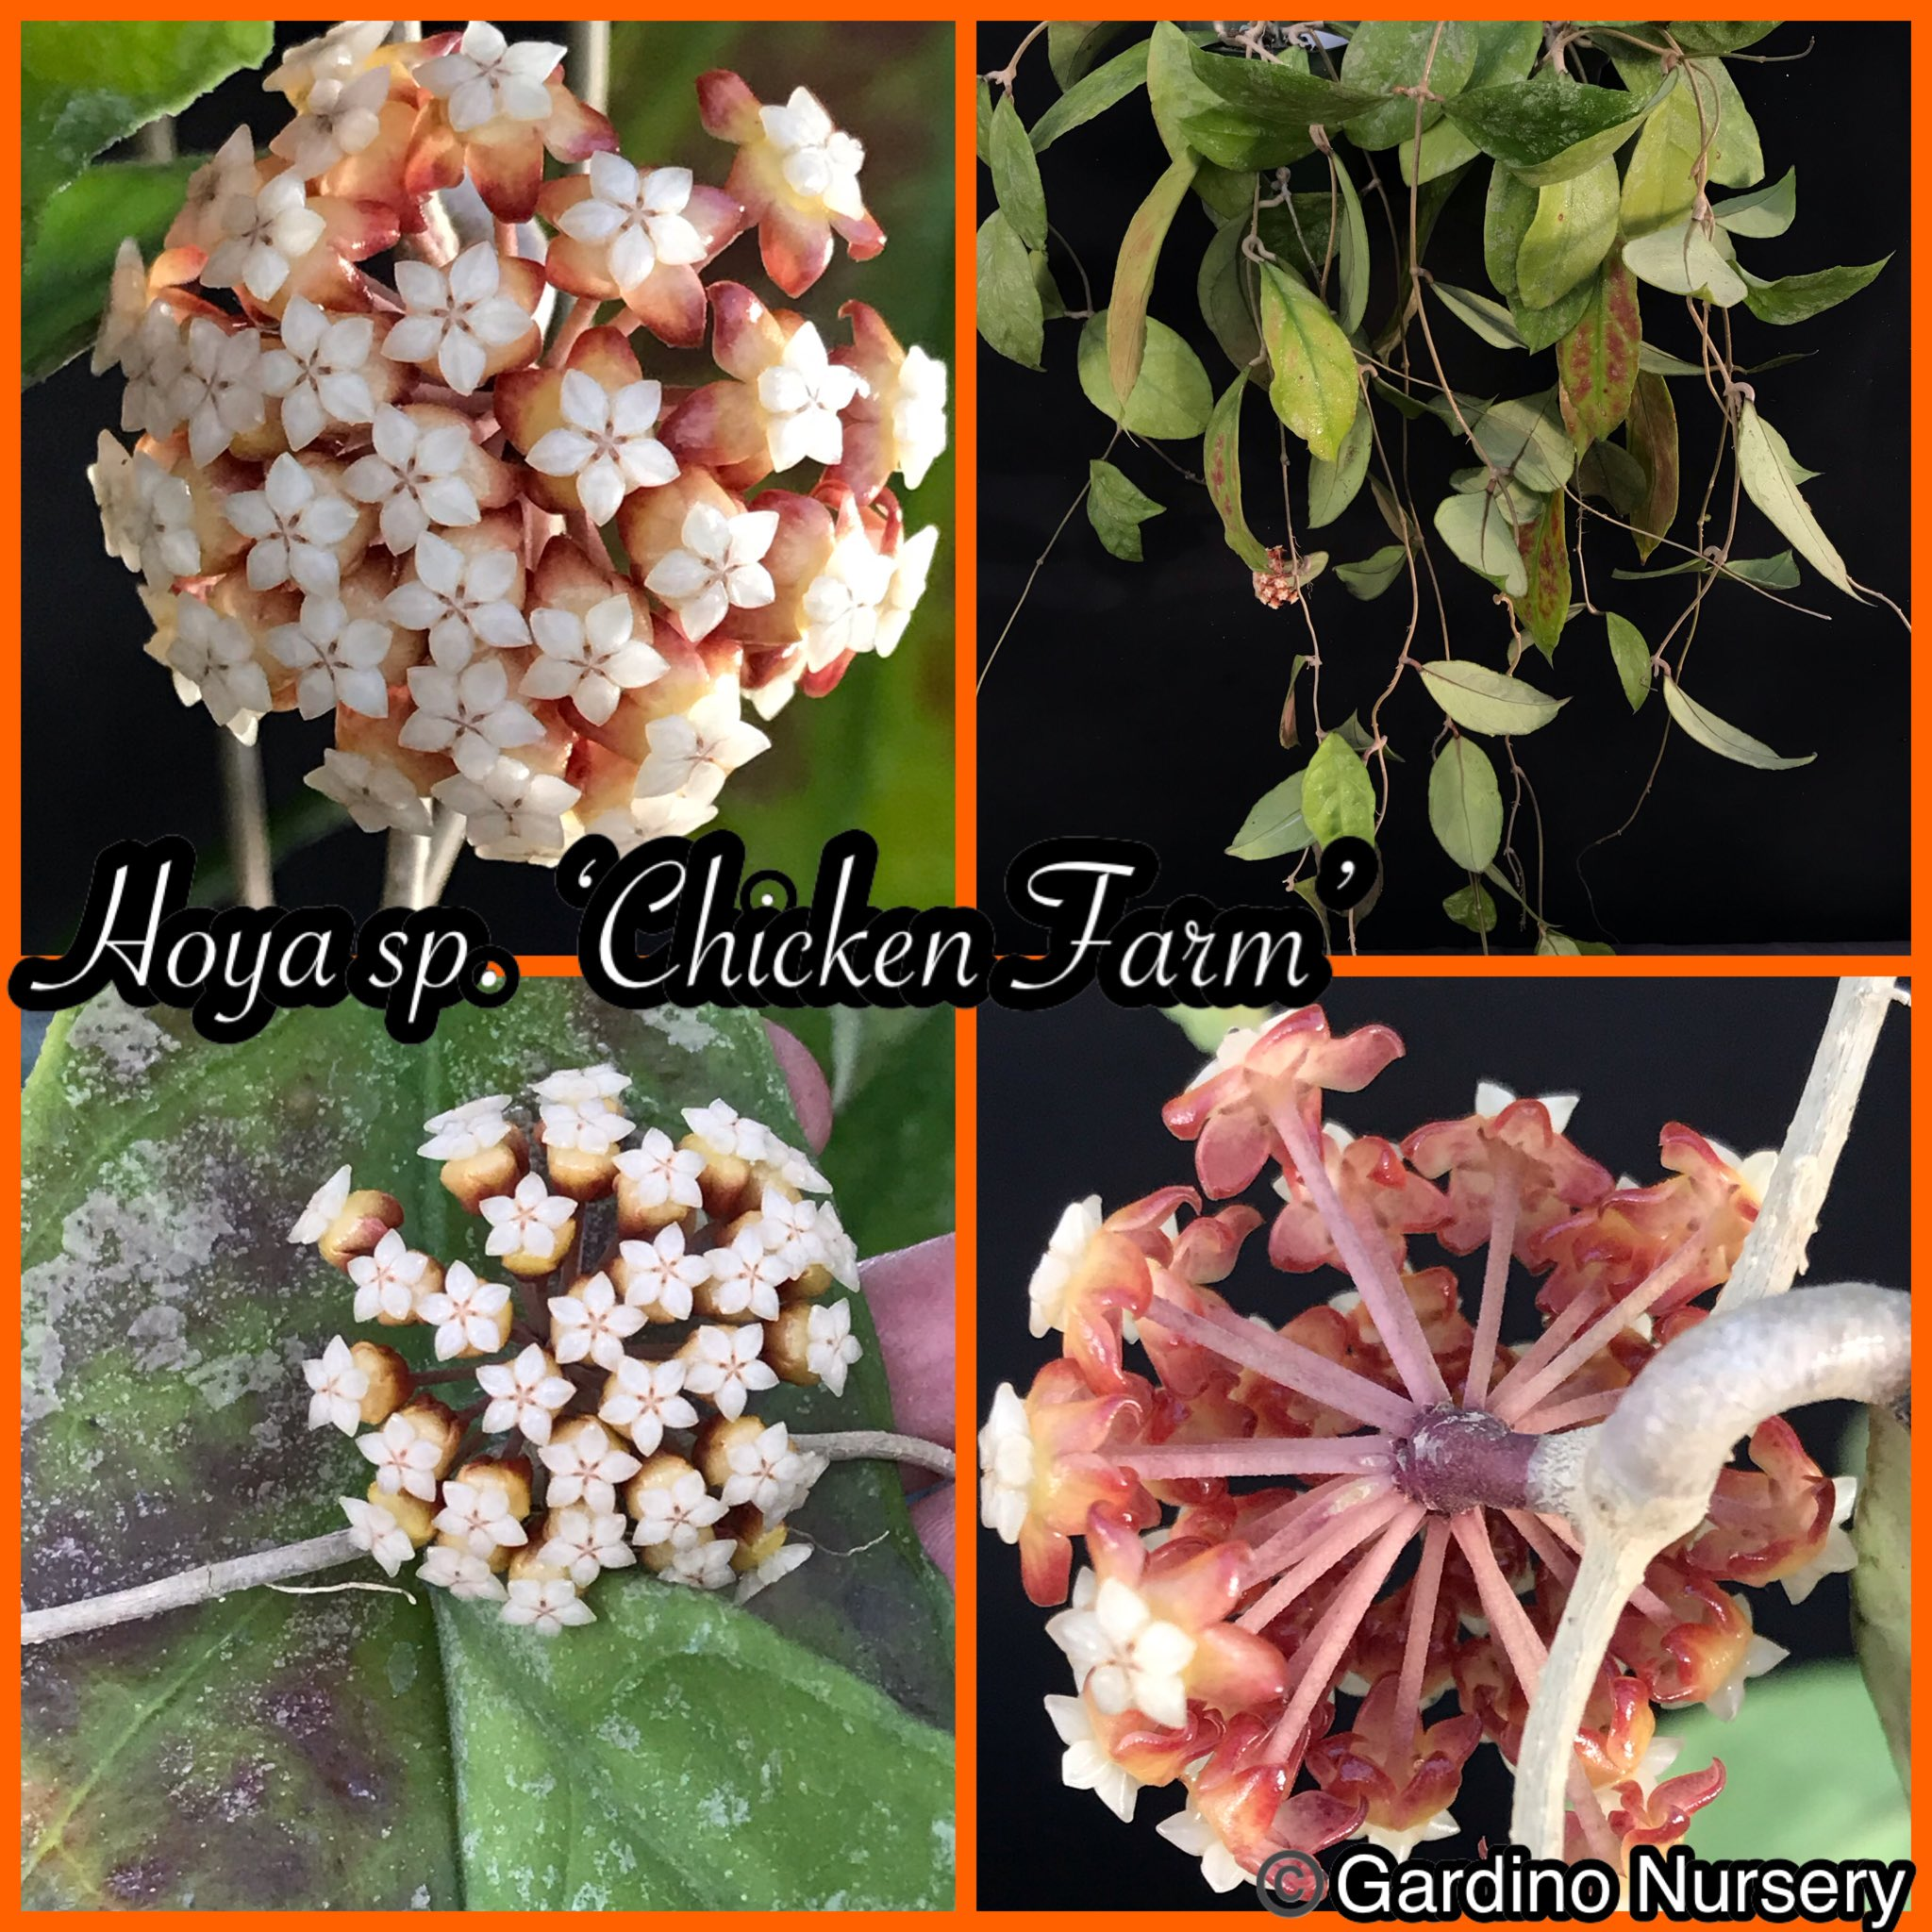 Hoya Plants On Twitter Hoya Sp Chicken Farm Beautiful Silver Splashed Leaves In The Winter The Leaves Blush Red The Flowers Are Cute And Small With Weak Scent Beautiful Https T Co Urhpsr9vco